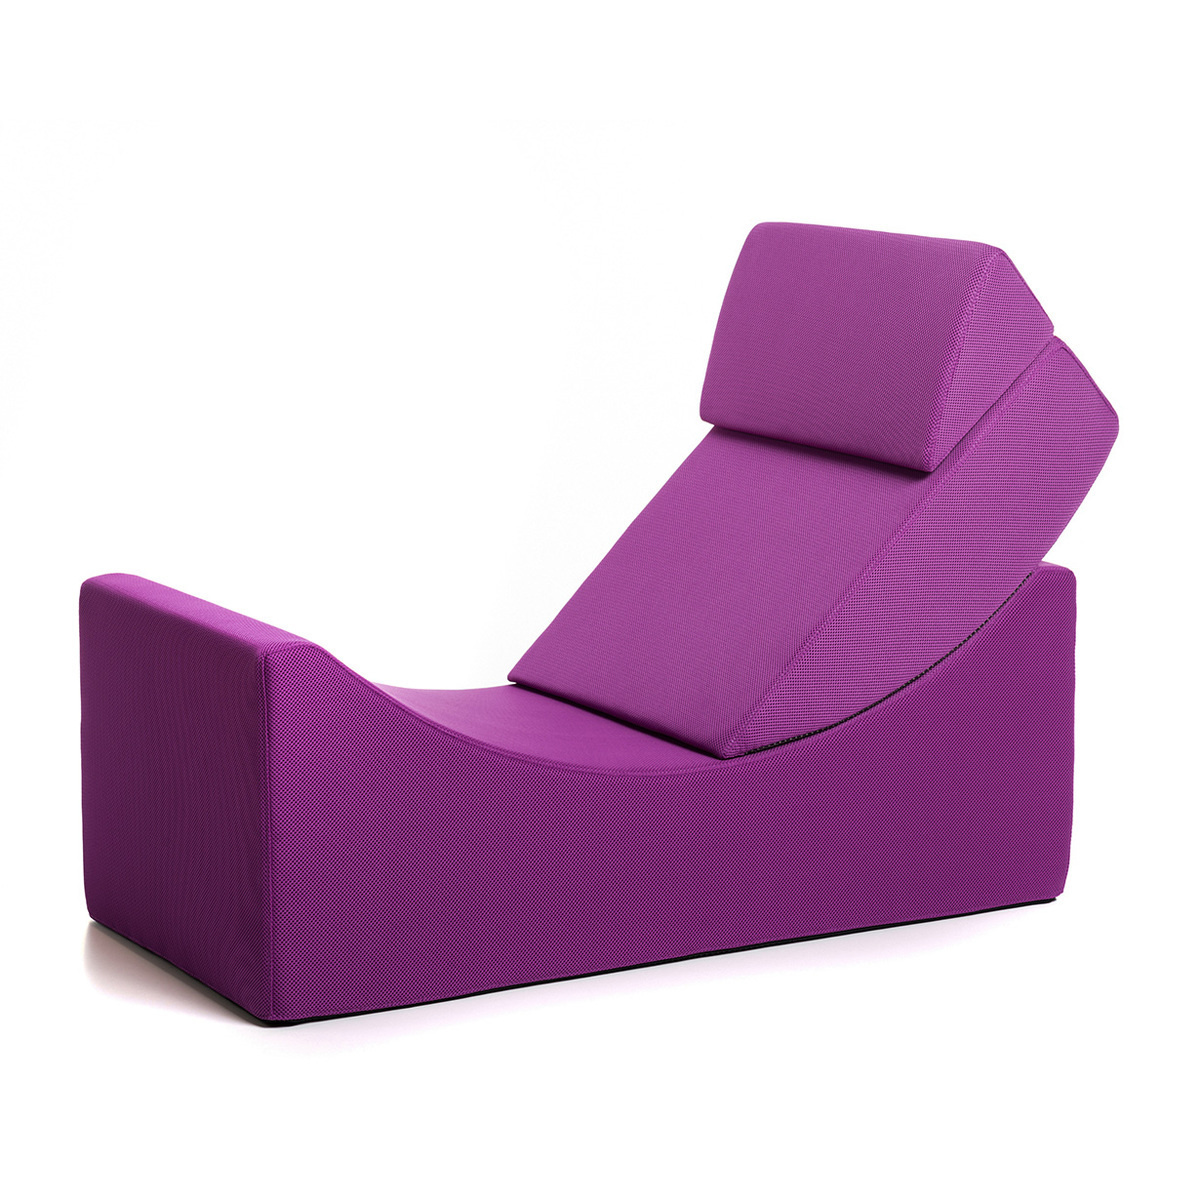 Chaises Longues Moon Chaise Longue By Lina Lovethesign